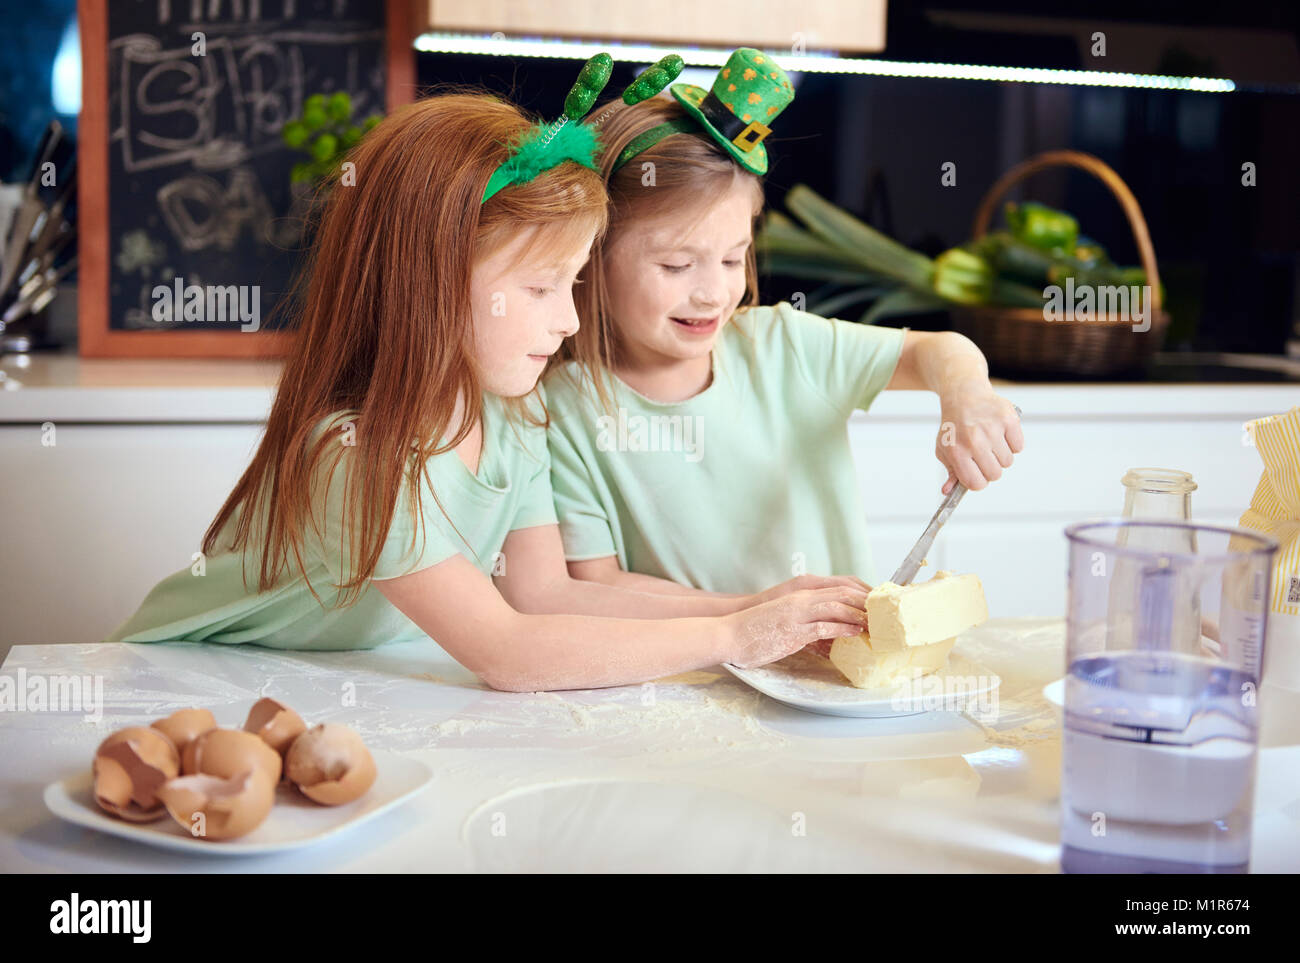 Cheerful siblings baking cookie together - Stock Image